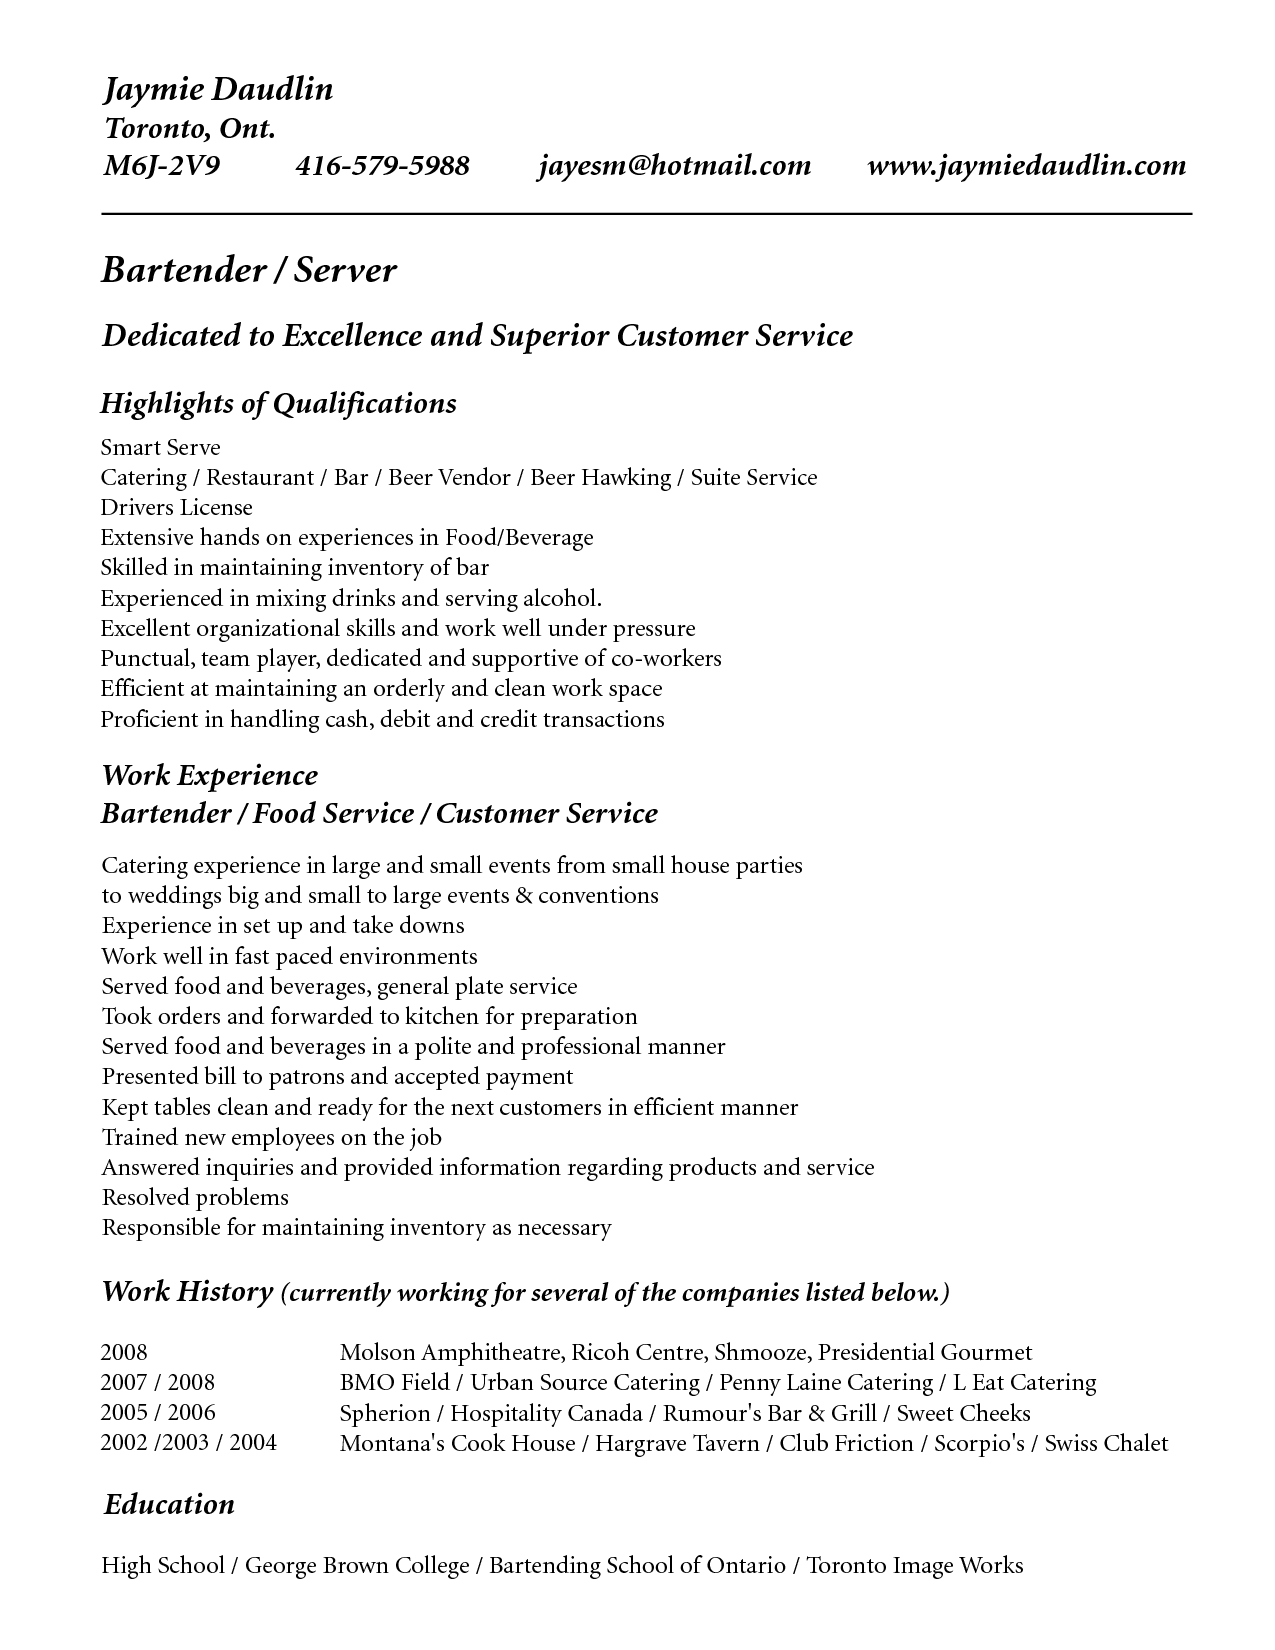 bartender server resume - Etame.mibawa.co